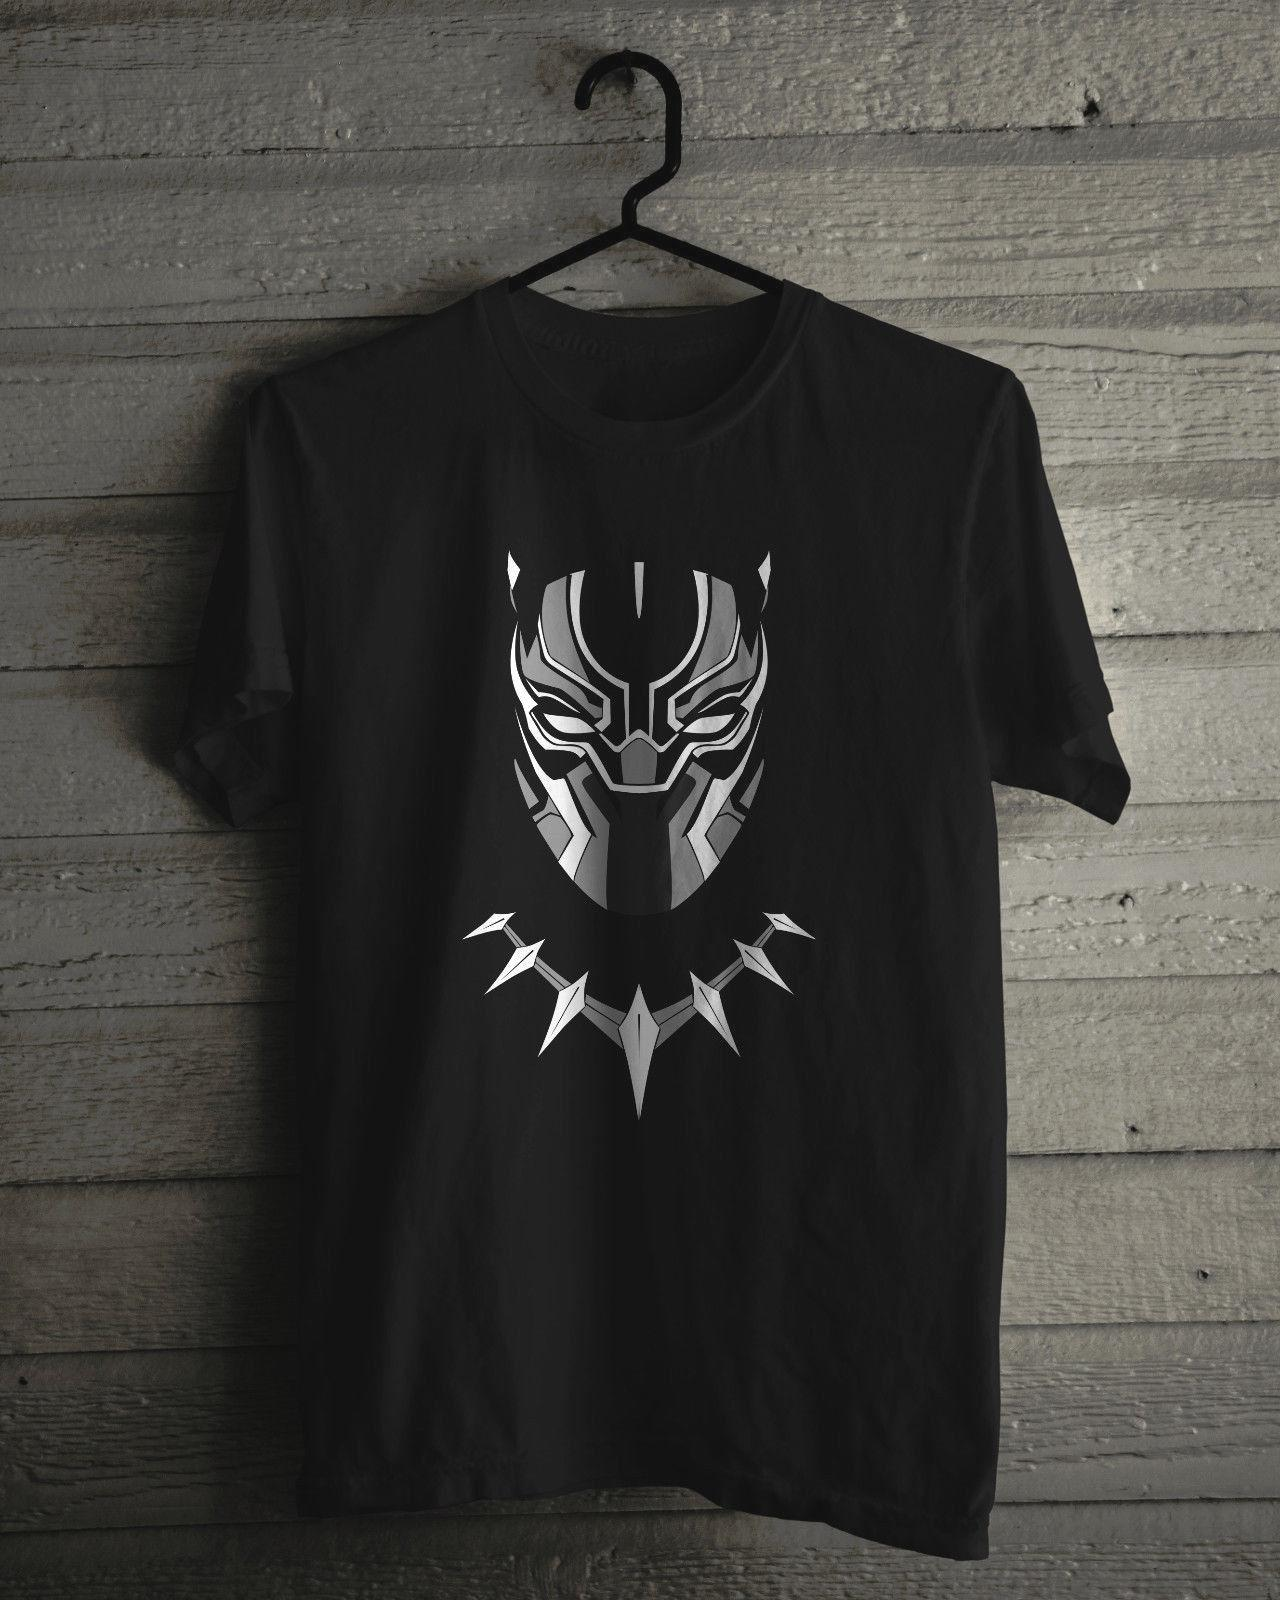 eefe0e2fe4 Black Panther T Shirt